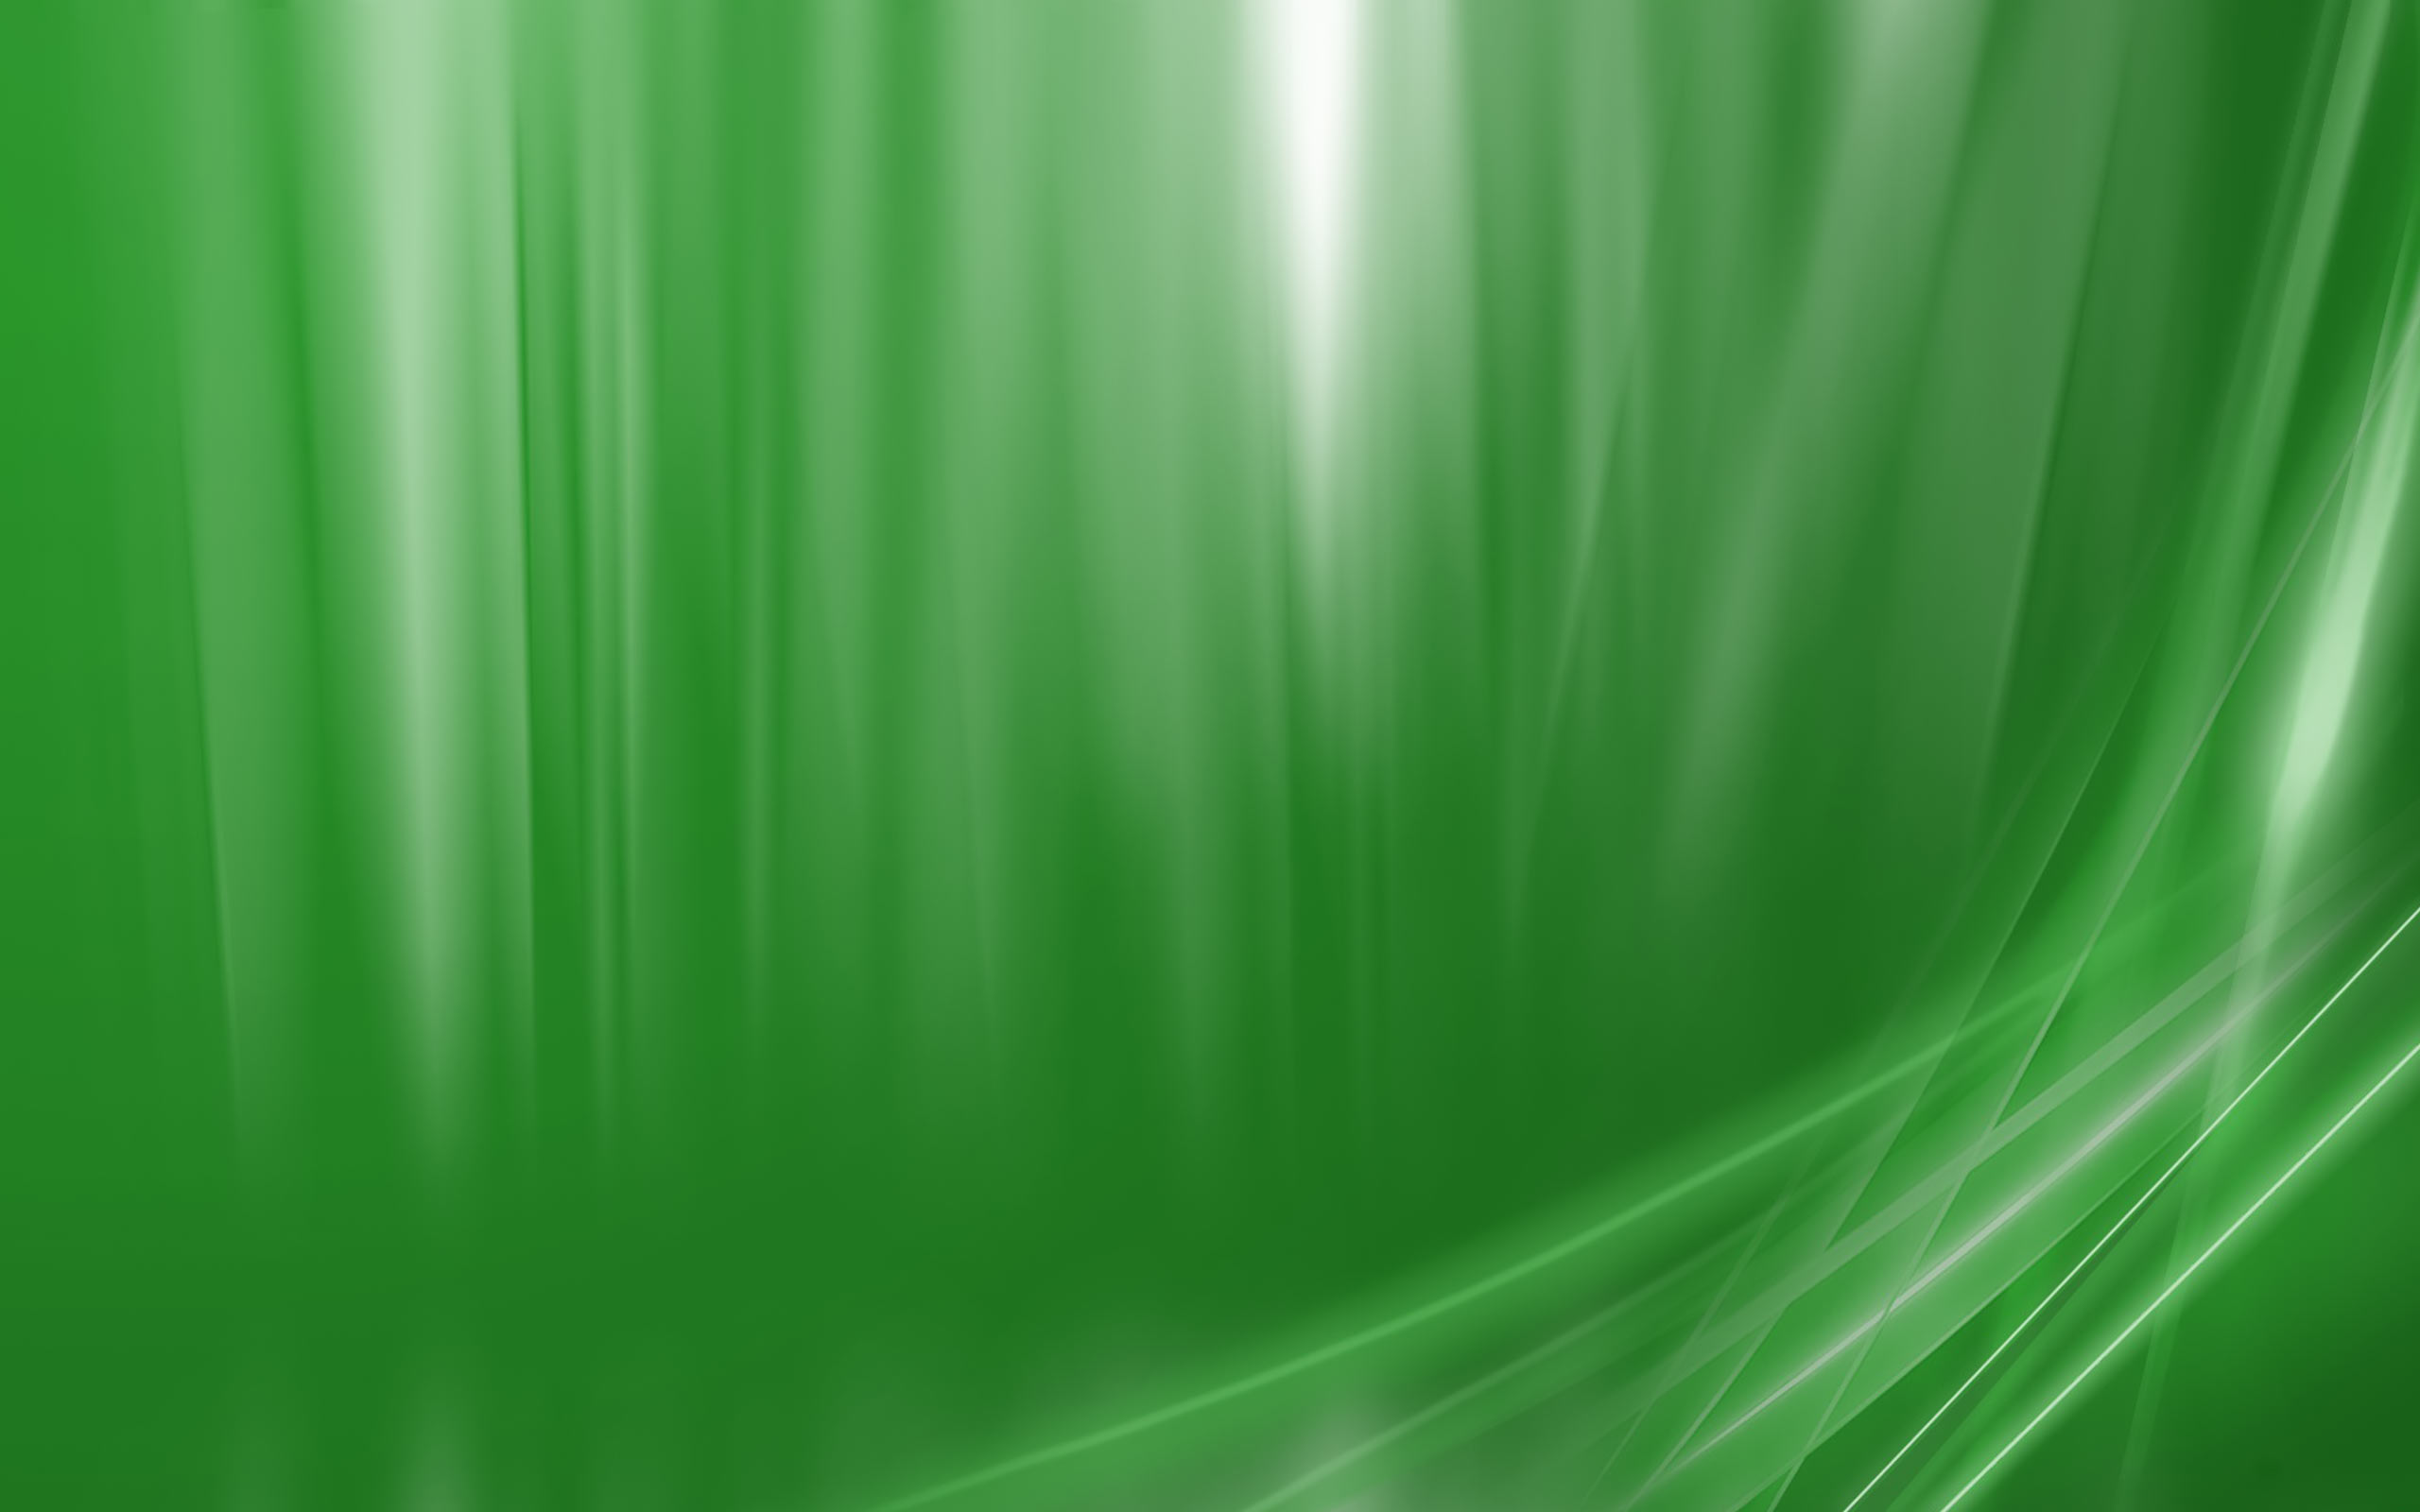 Category Color Download HD Wallpaper   Page 3 Page 3 2560x1600